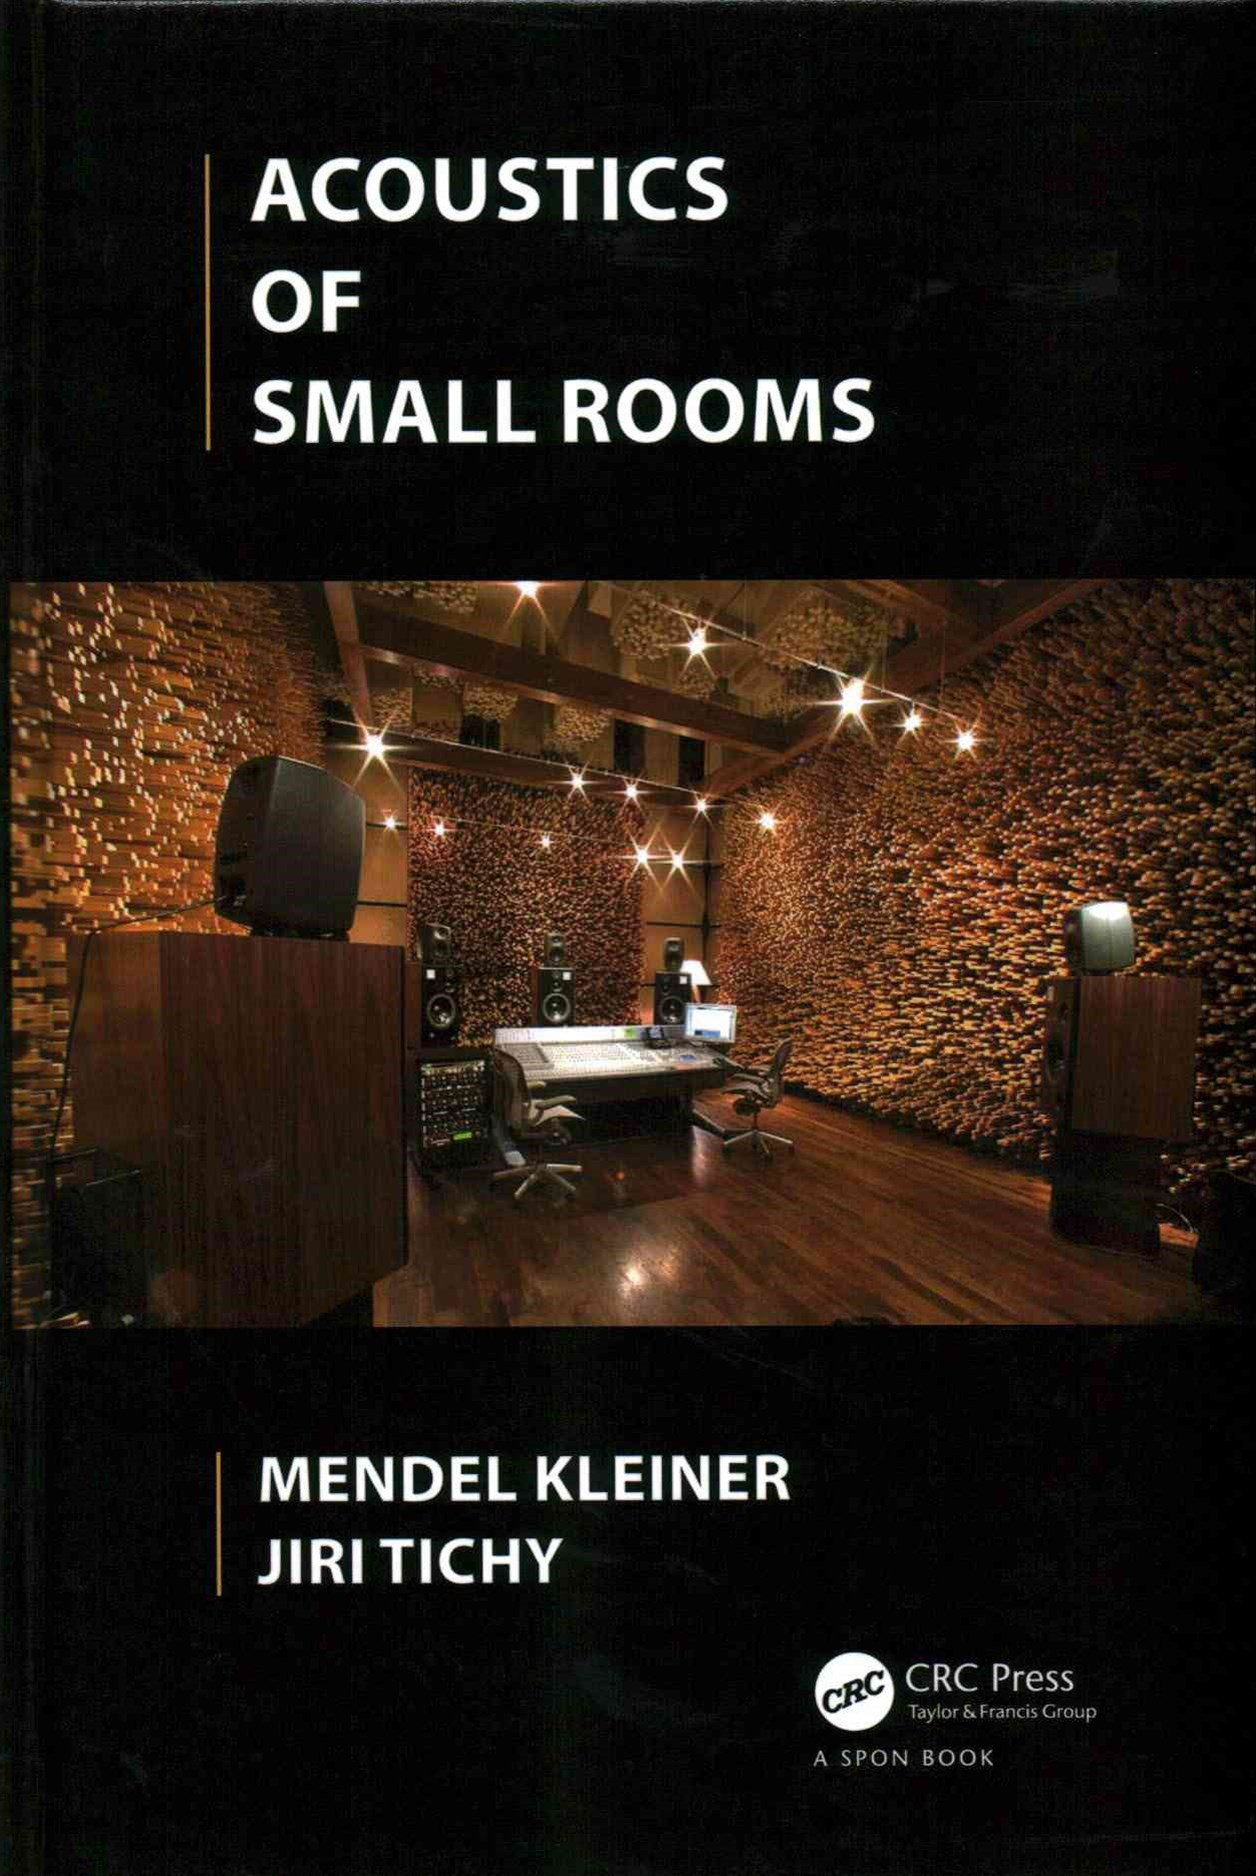 Acoustics and Design of Small Rooms